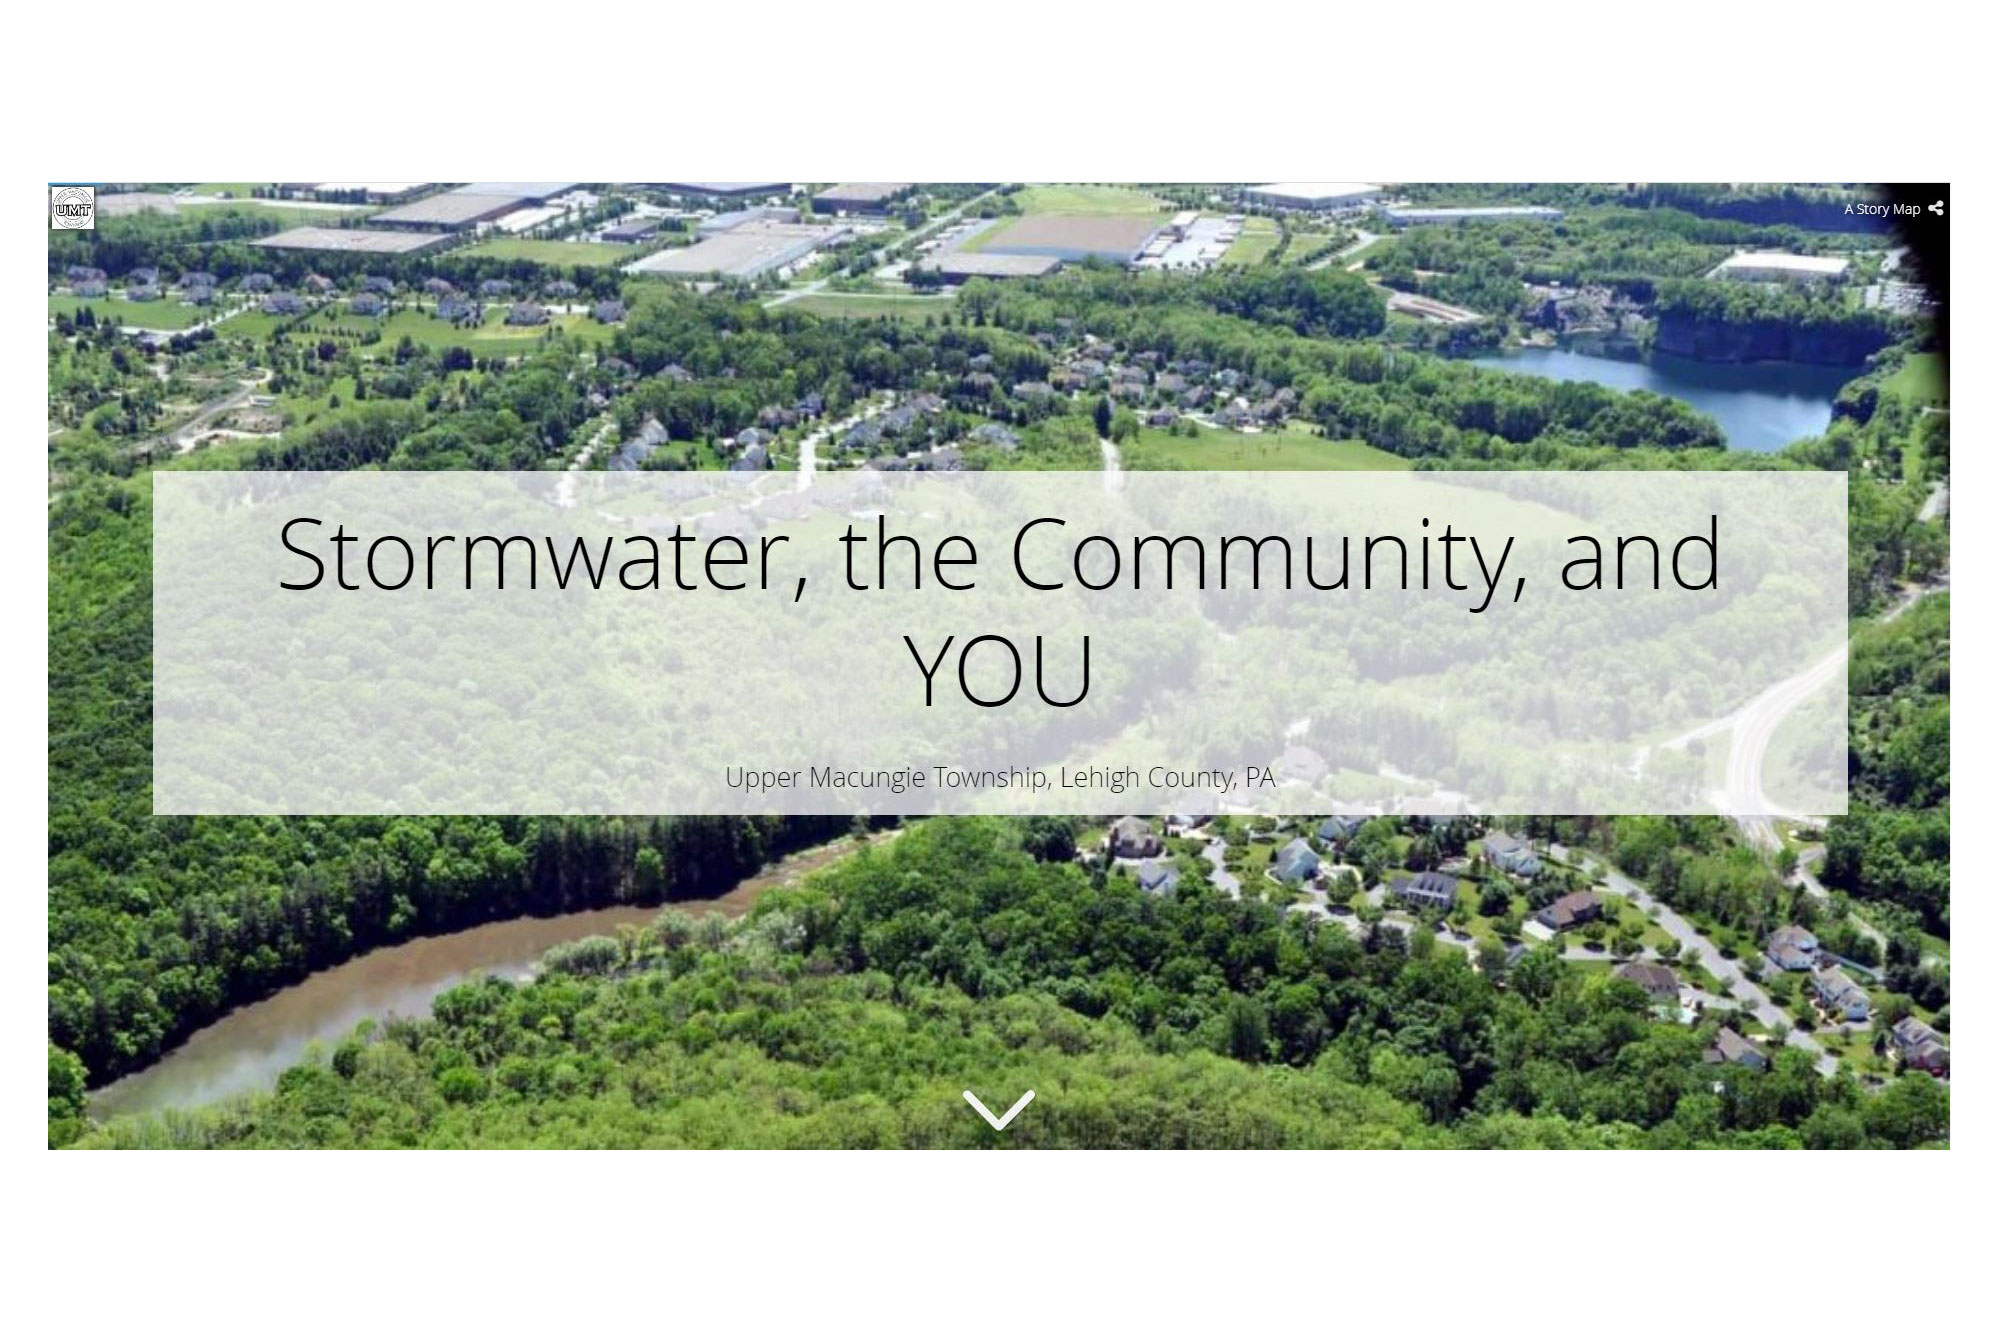 Story Map: Stormwater, the Community and YOU